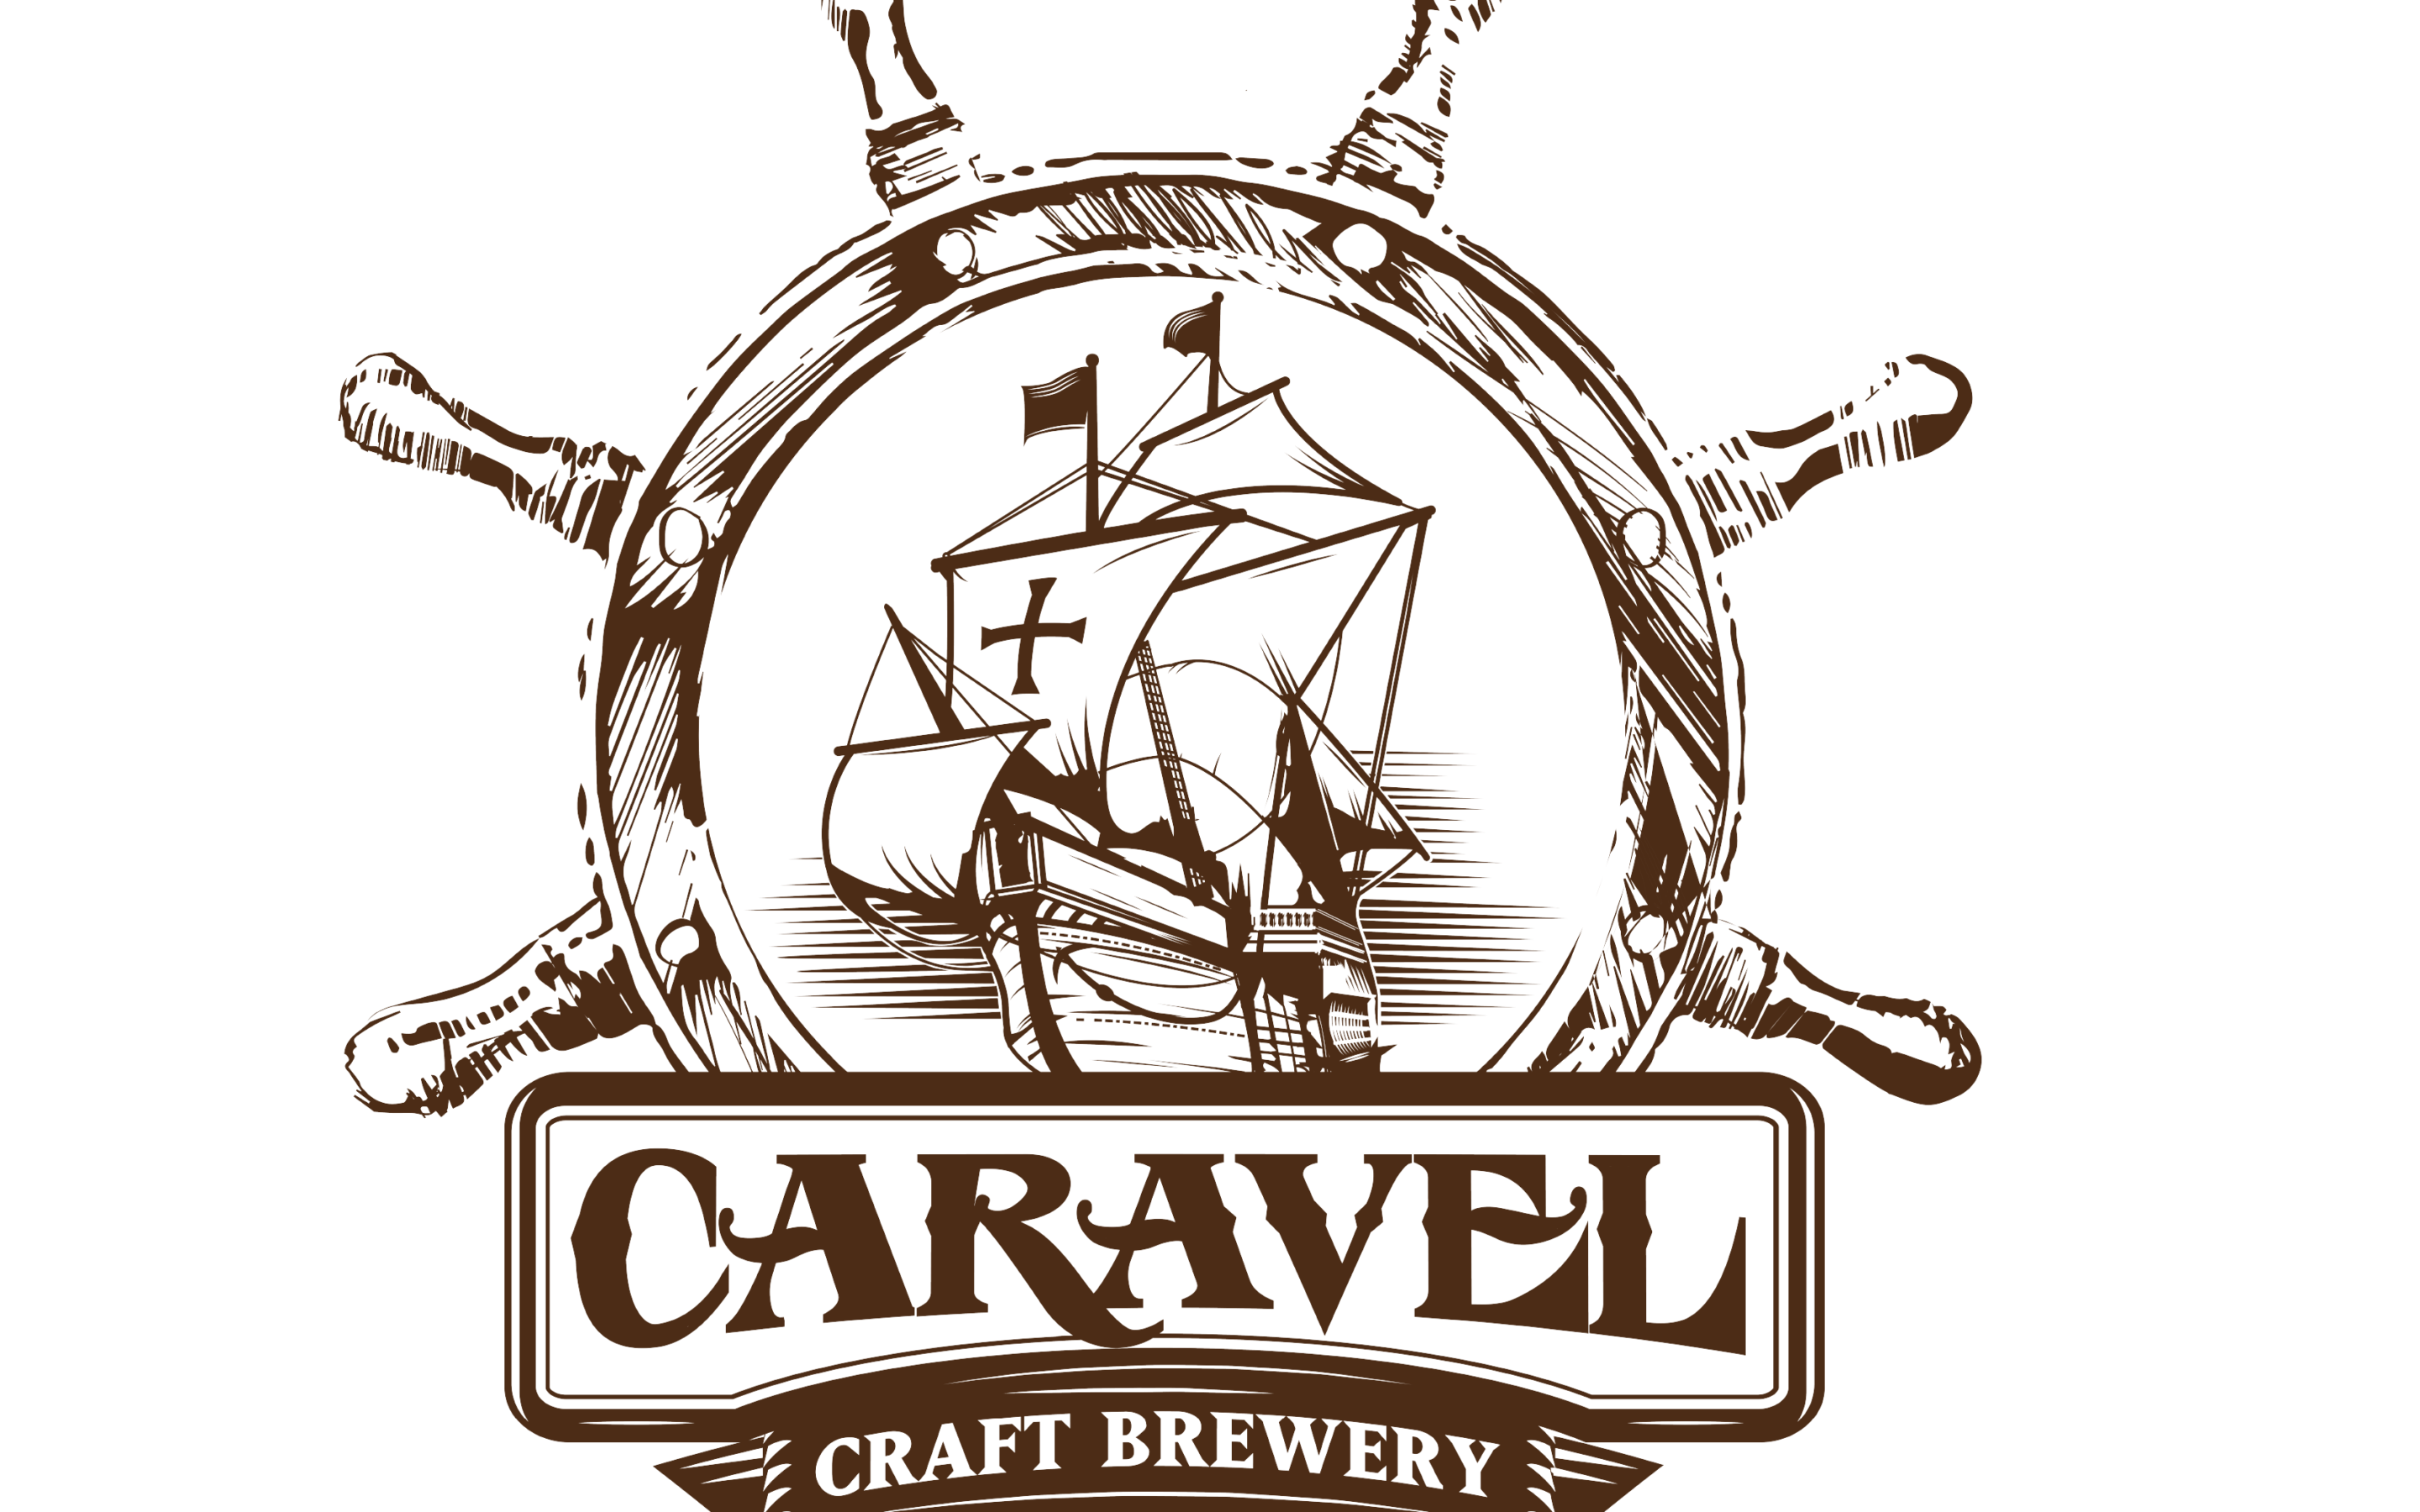 Caravel Craft Brewery